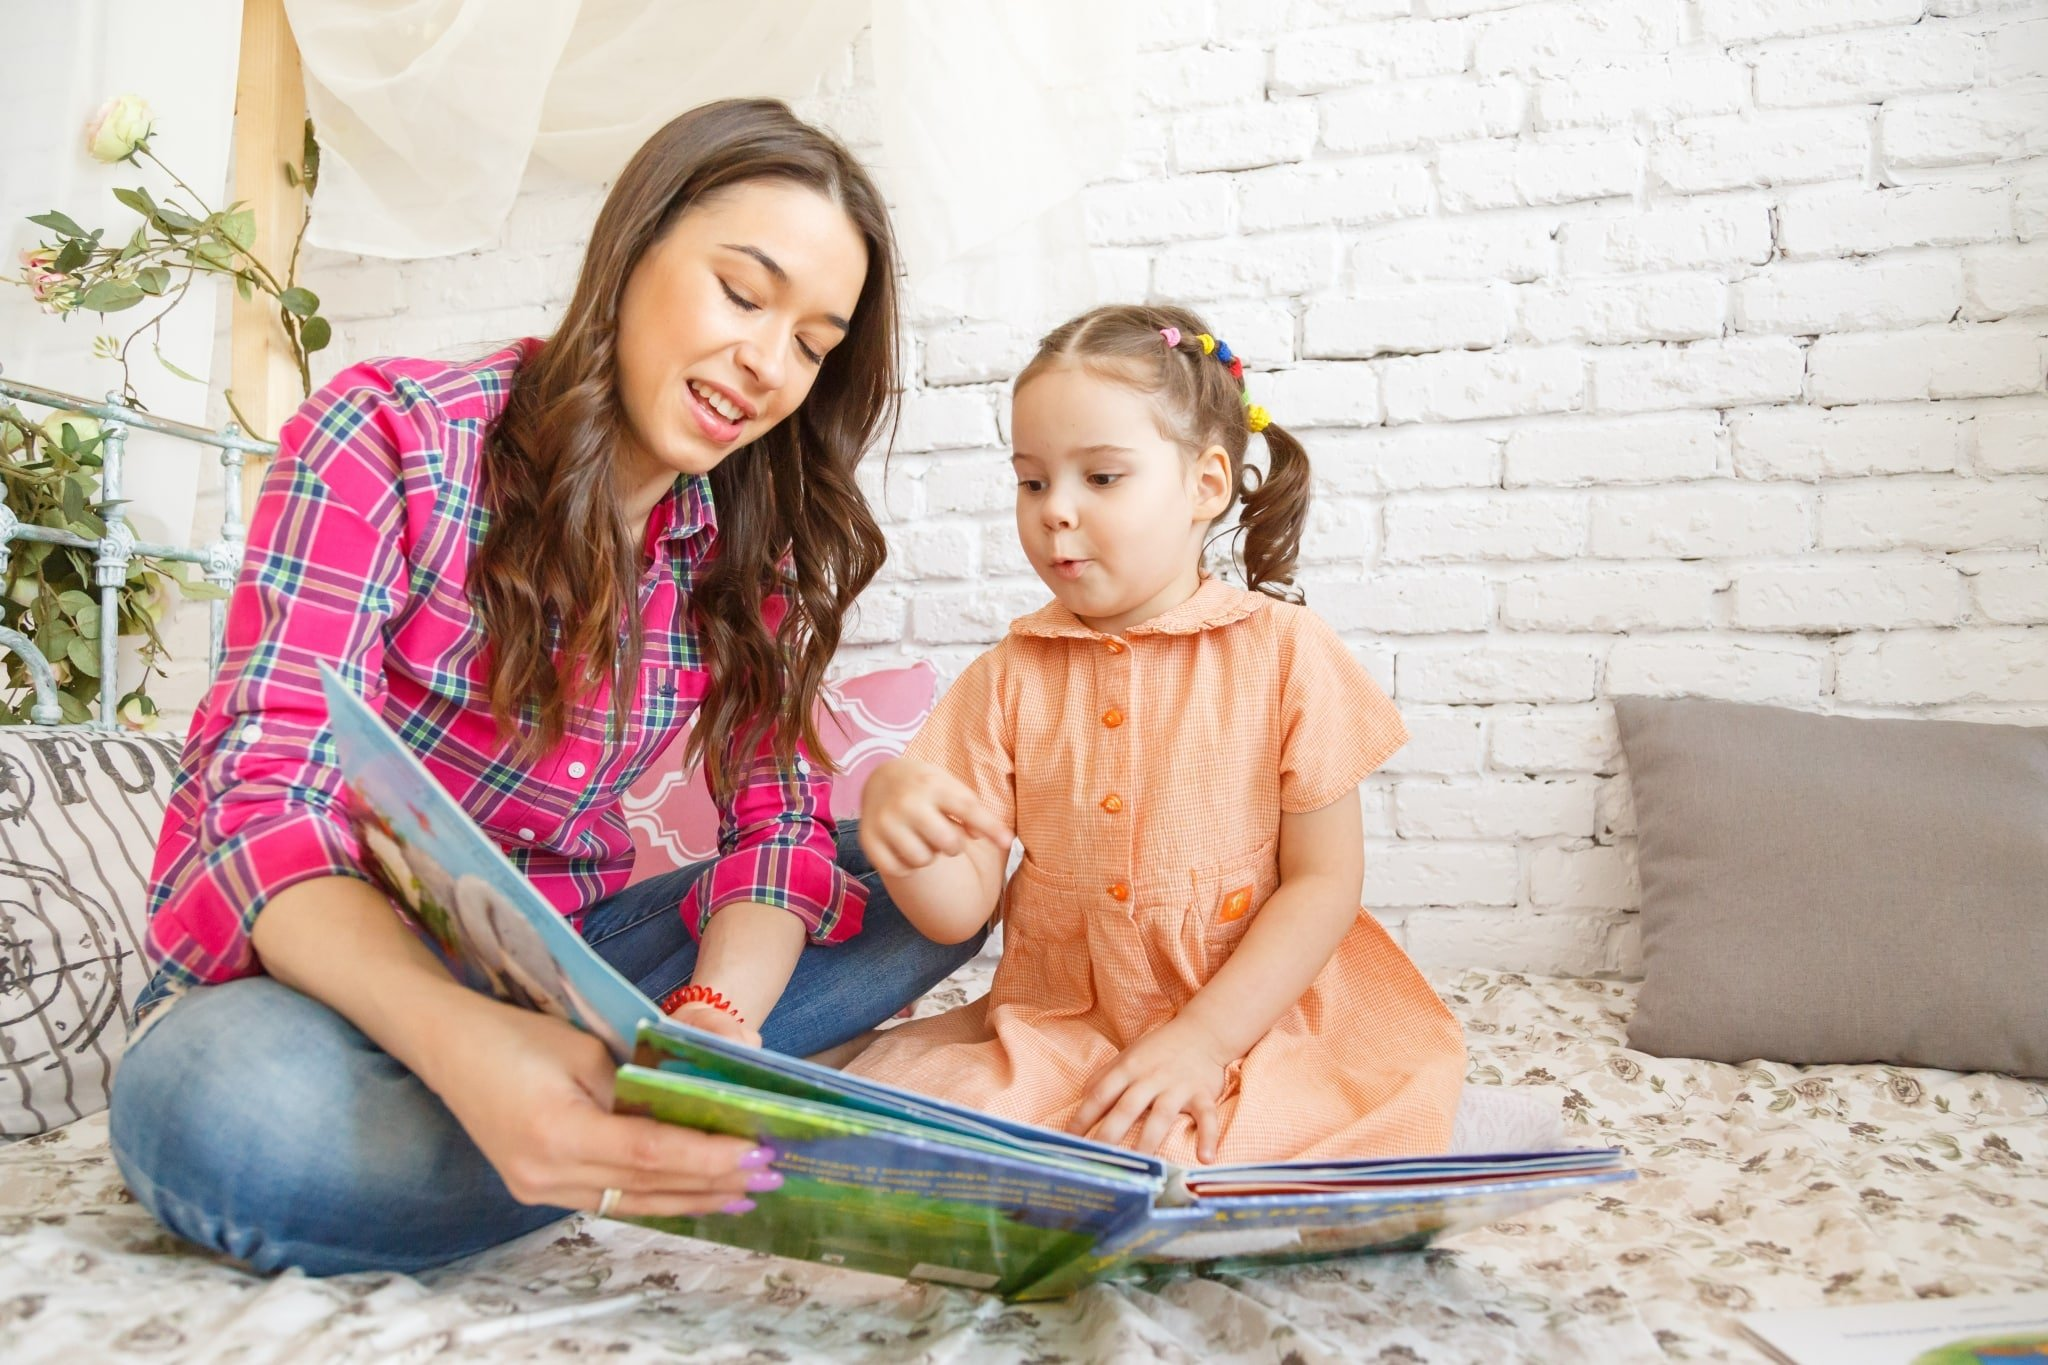 IWD2-young-mother-and-her-child-girl-reading-a-book-PFK6WNB-scaled.jpg